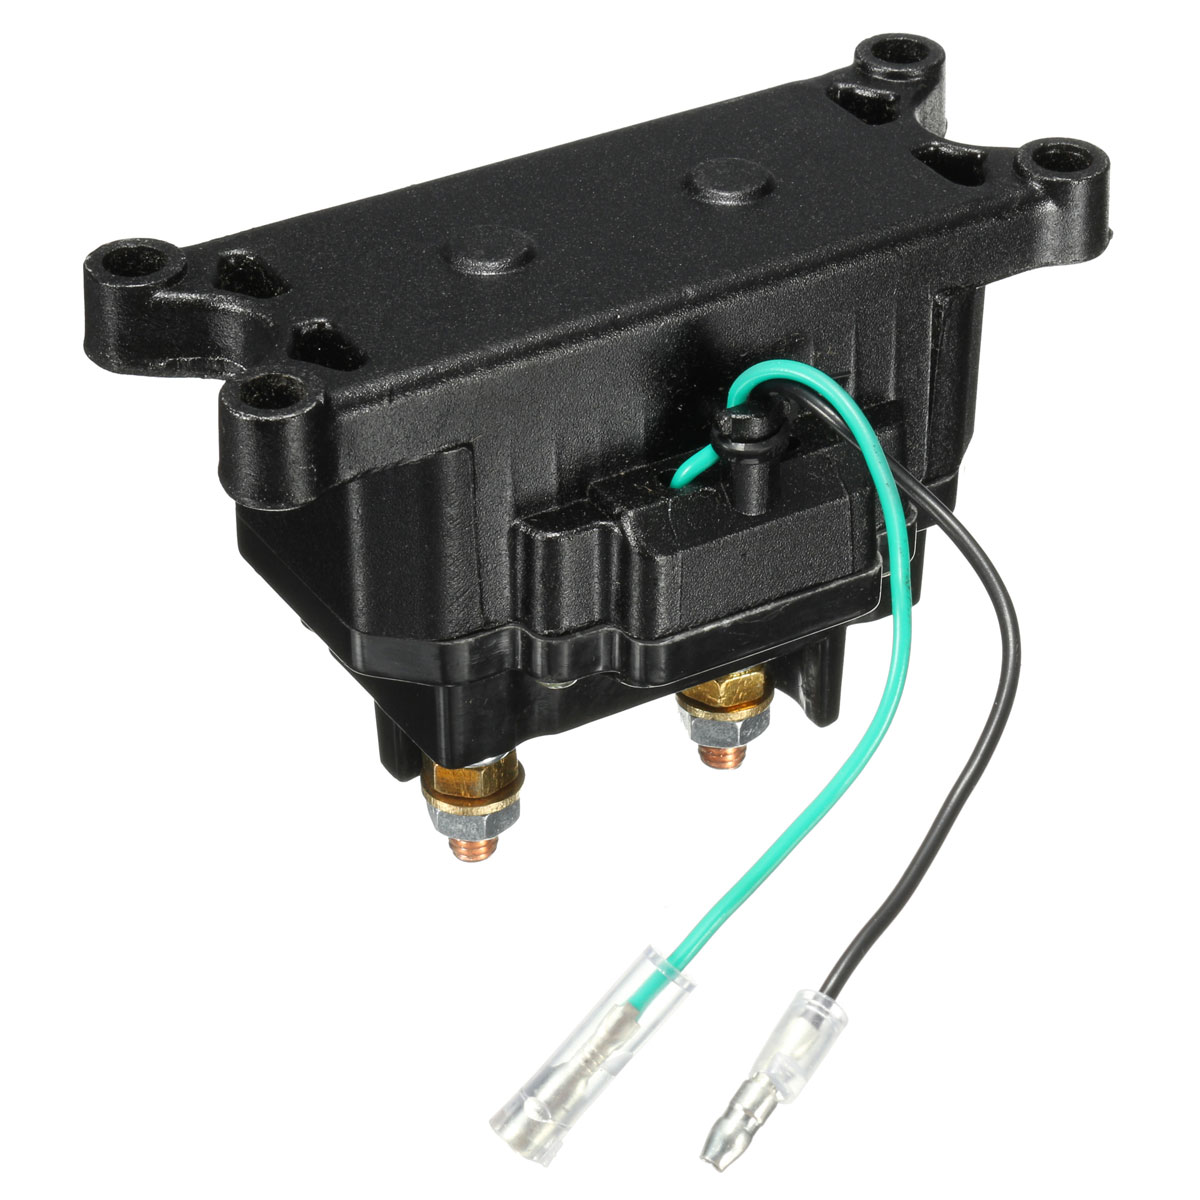 df30273e 3944 23ee c8cd d582525a61c2 12v solenoid relay contactor winch rocker thumb switch for atv utv champion 10000 lb winch wiring diagram at mifinder.co